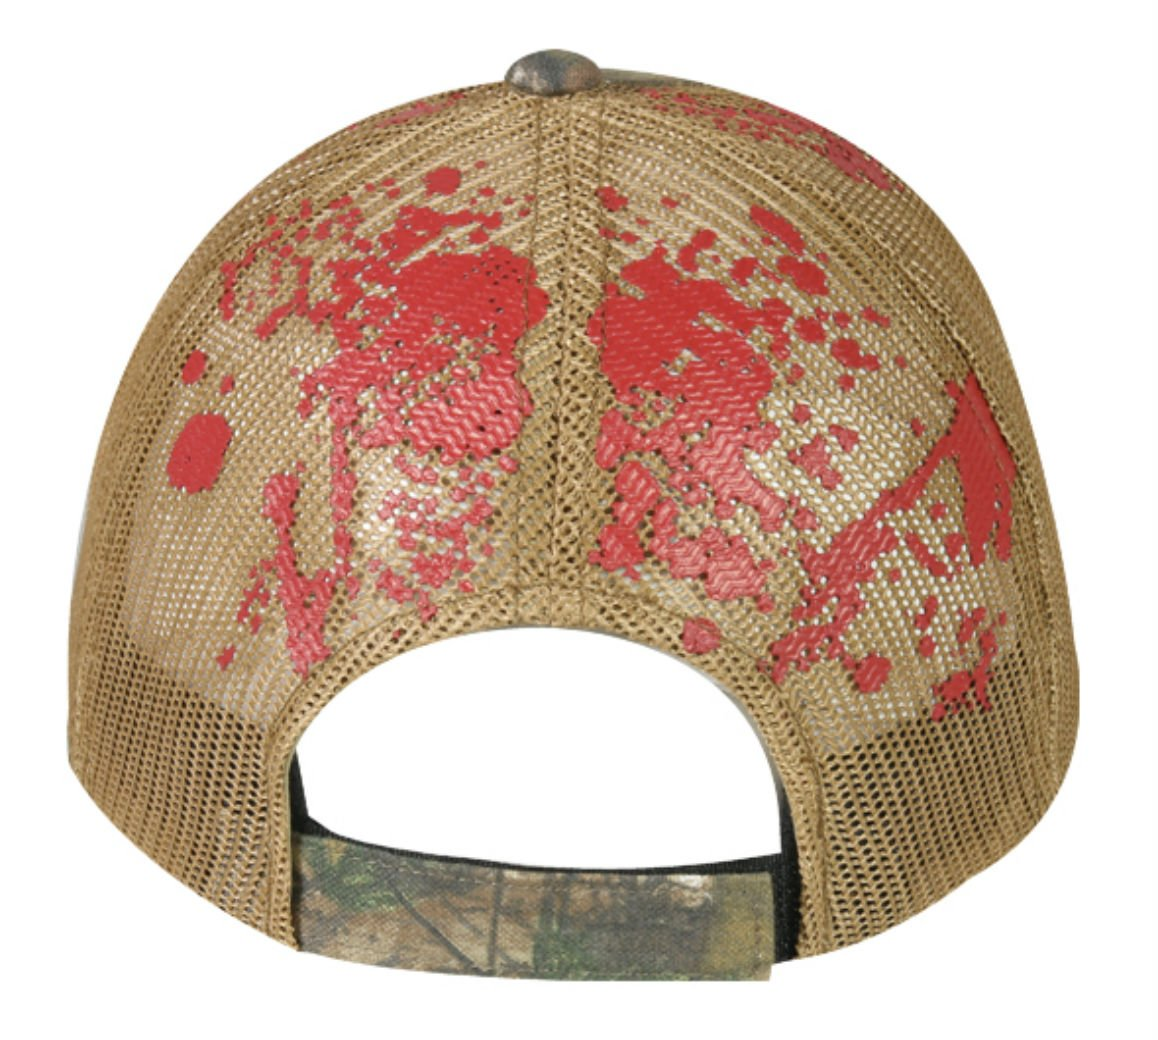 Squirrel Target Cross-Hair with Blood Splatter Mesh Hunting Hat by Outdoor Cap (Image #2)